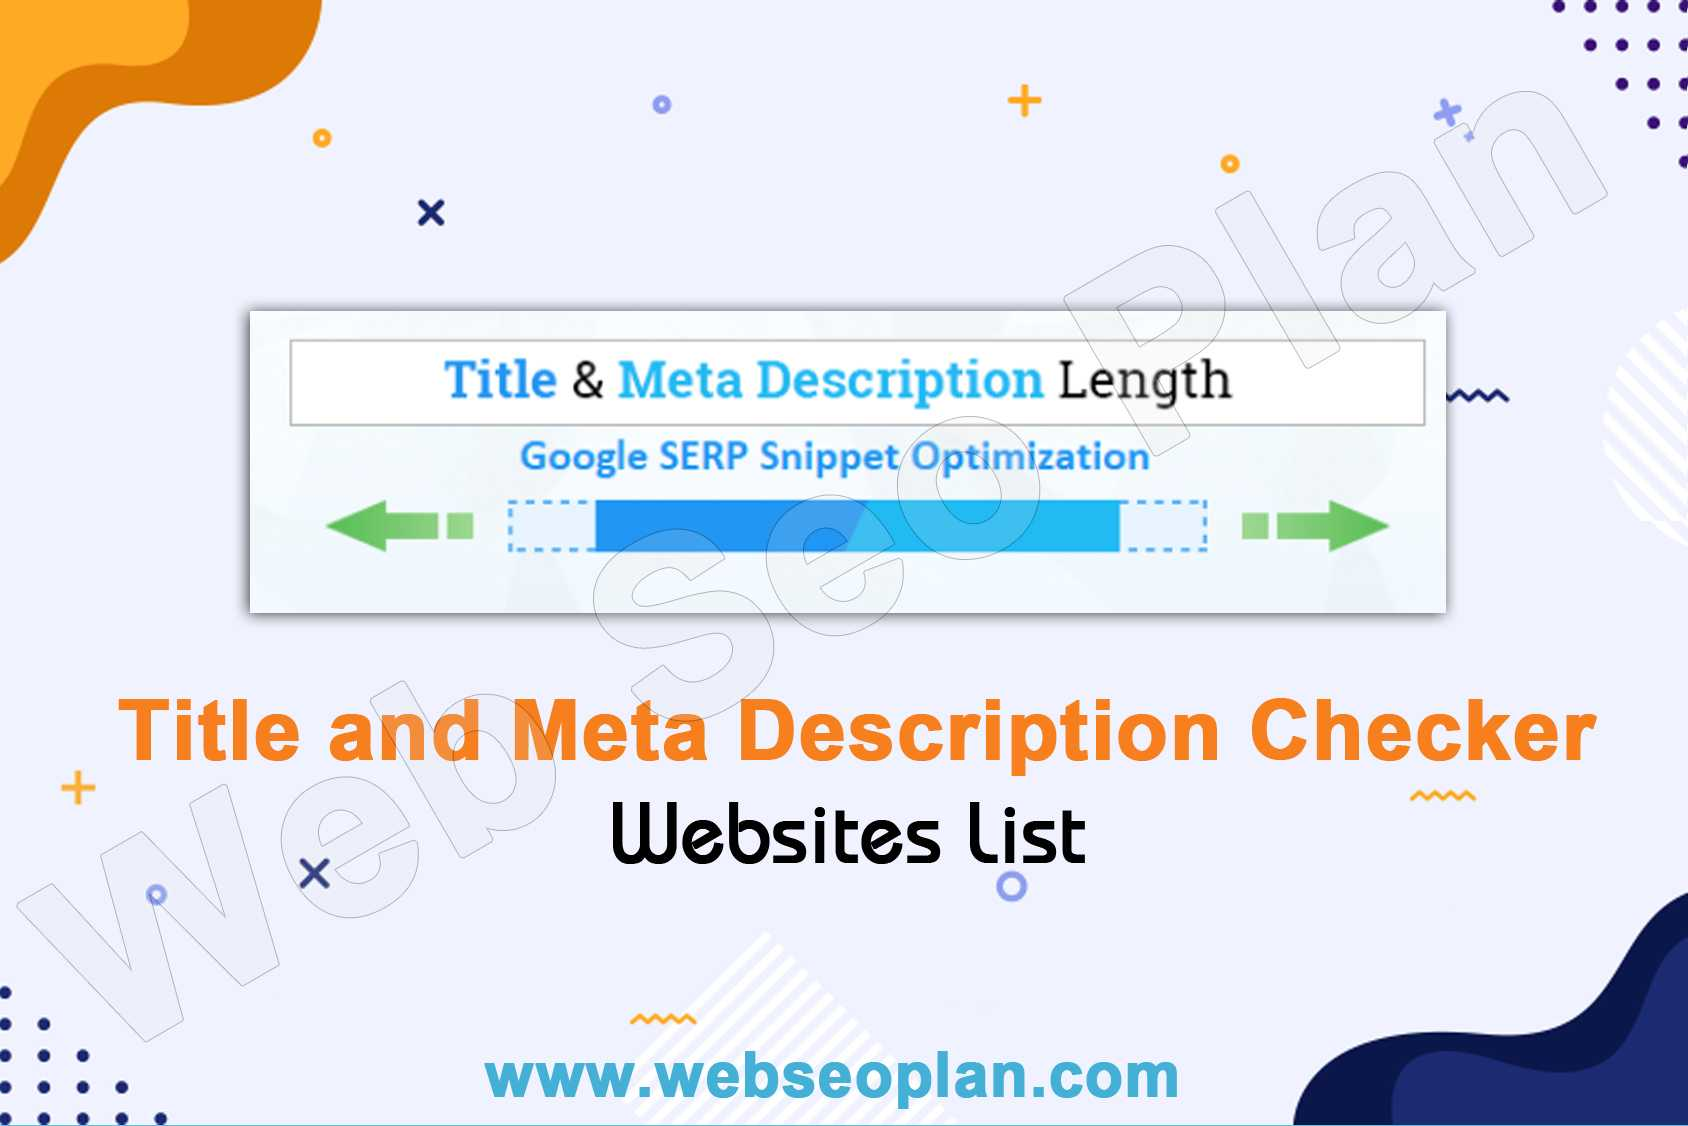 Title and Meta Description Checker